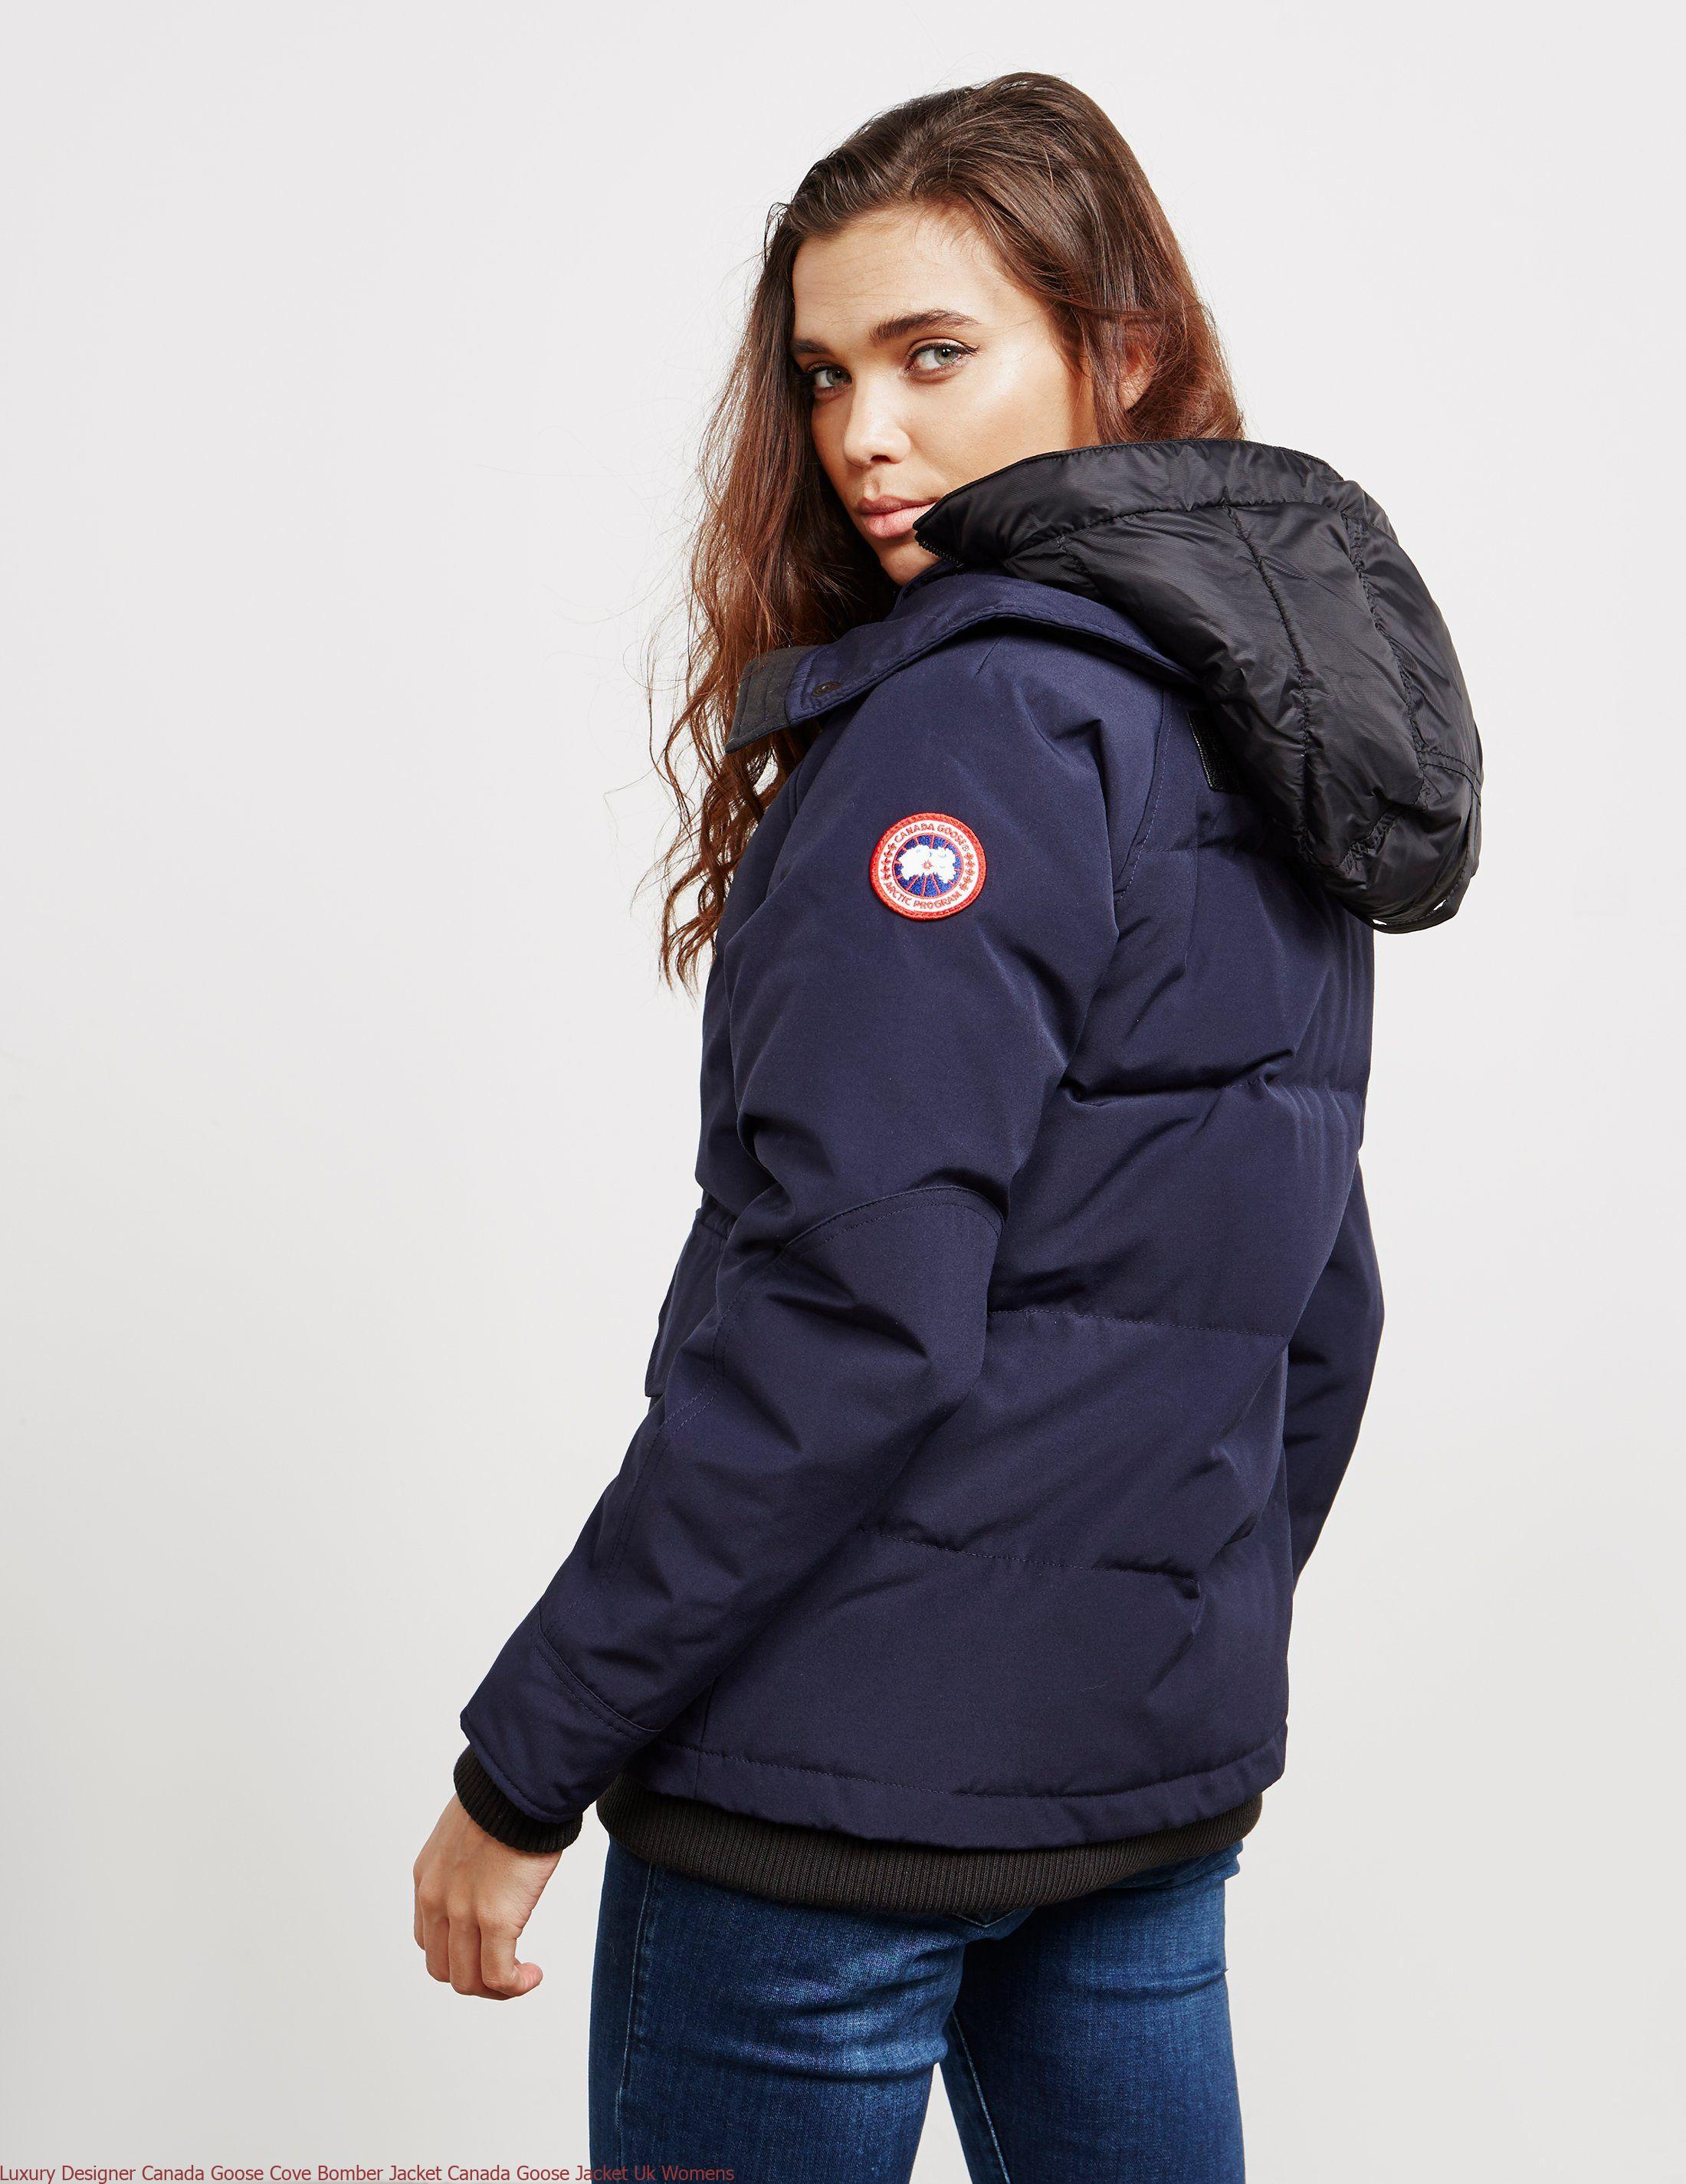 Luxury Designer Canada Goose Cove Bomber Jacket Canada Goose Jacket Uk  Womens – Canada Goose Uk Outlet – Up to 70% Off Cheap Canada Goose 27dd50878